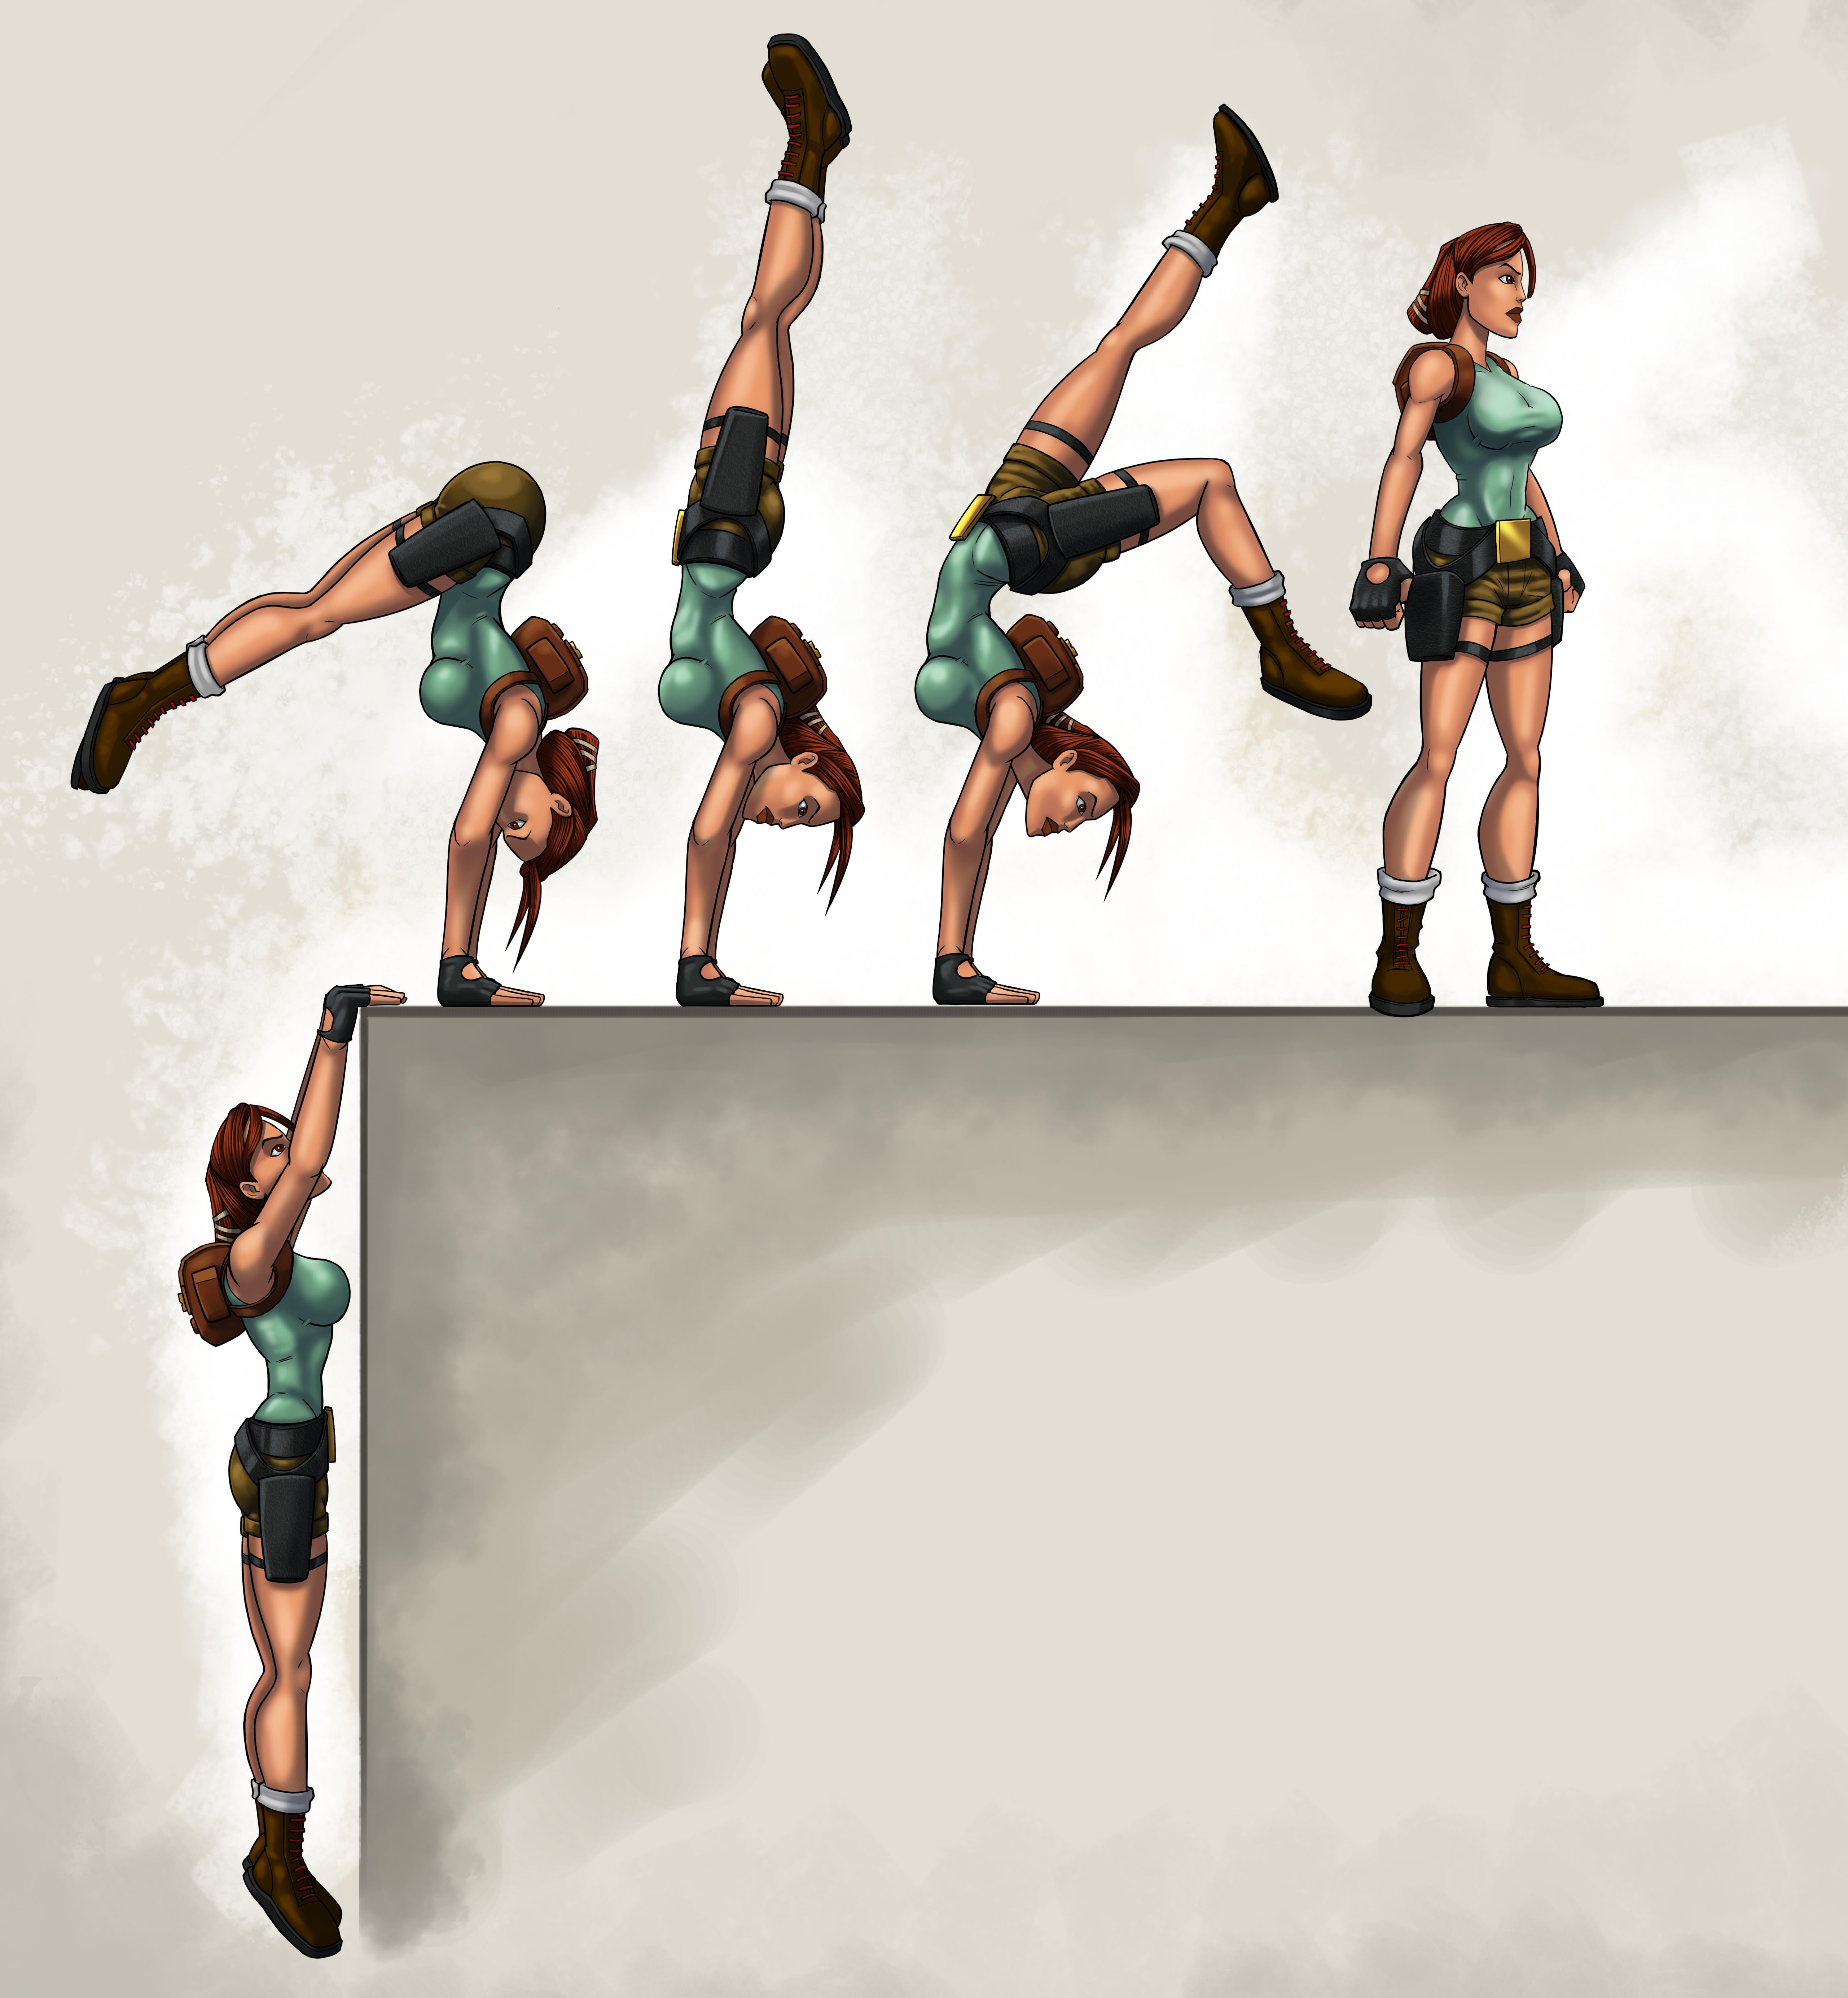 A Graphic with Lara doing the handstand pose